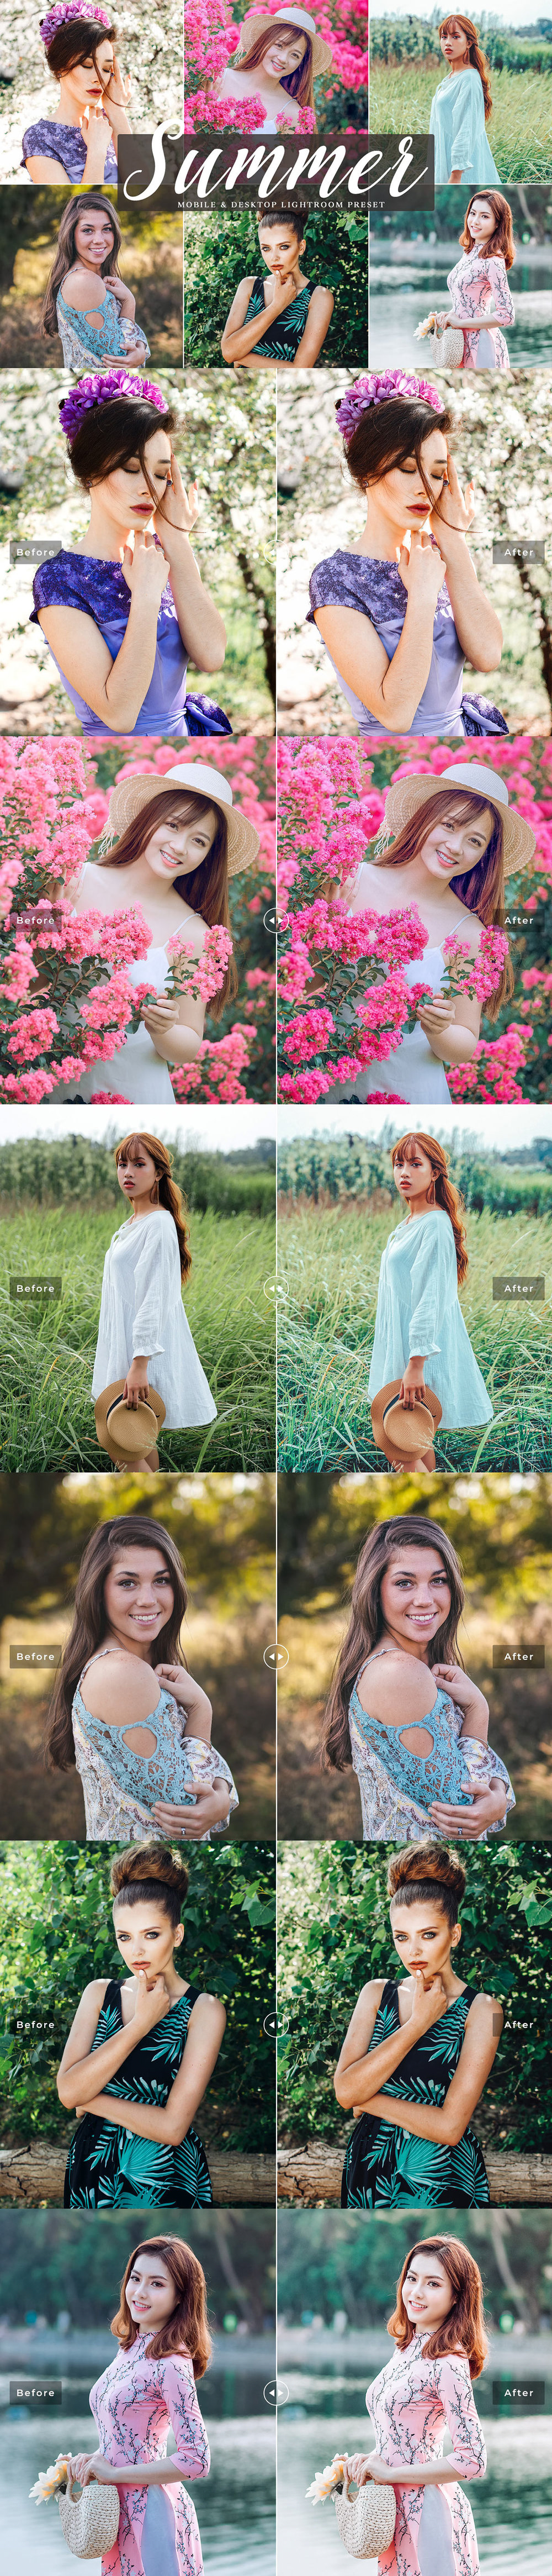 Free Summer #Mobile #Lightroom #Presets Pack was created to give your photographs a warm summer look by warming them just in a single click!